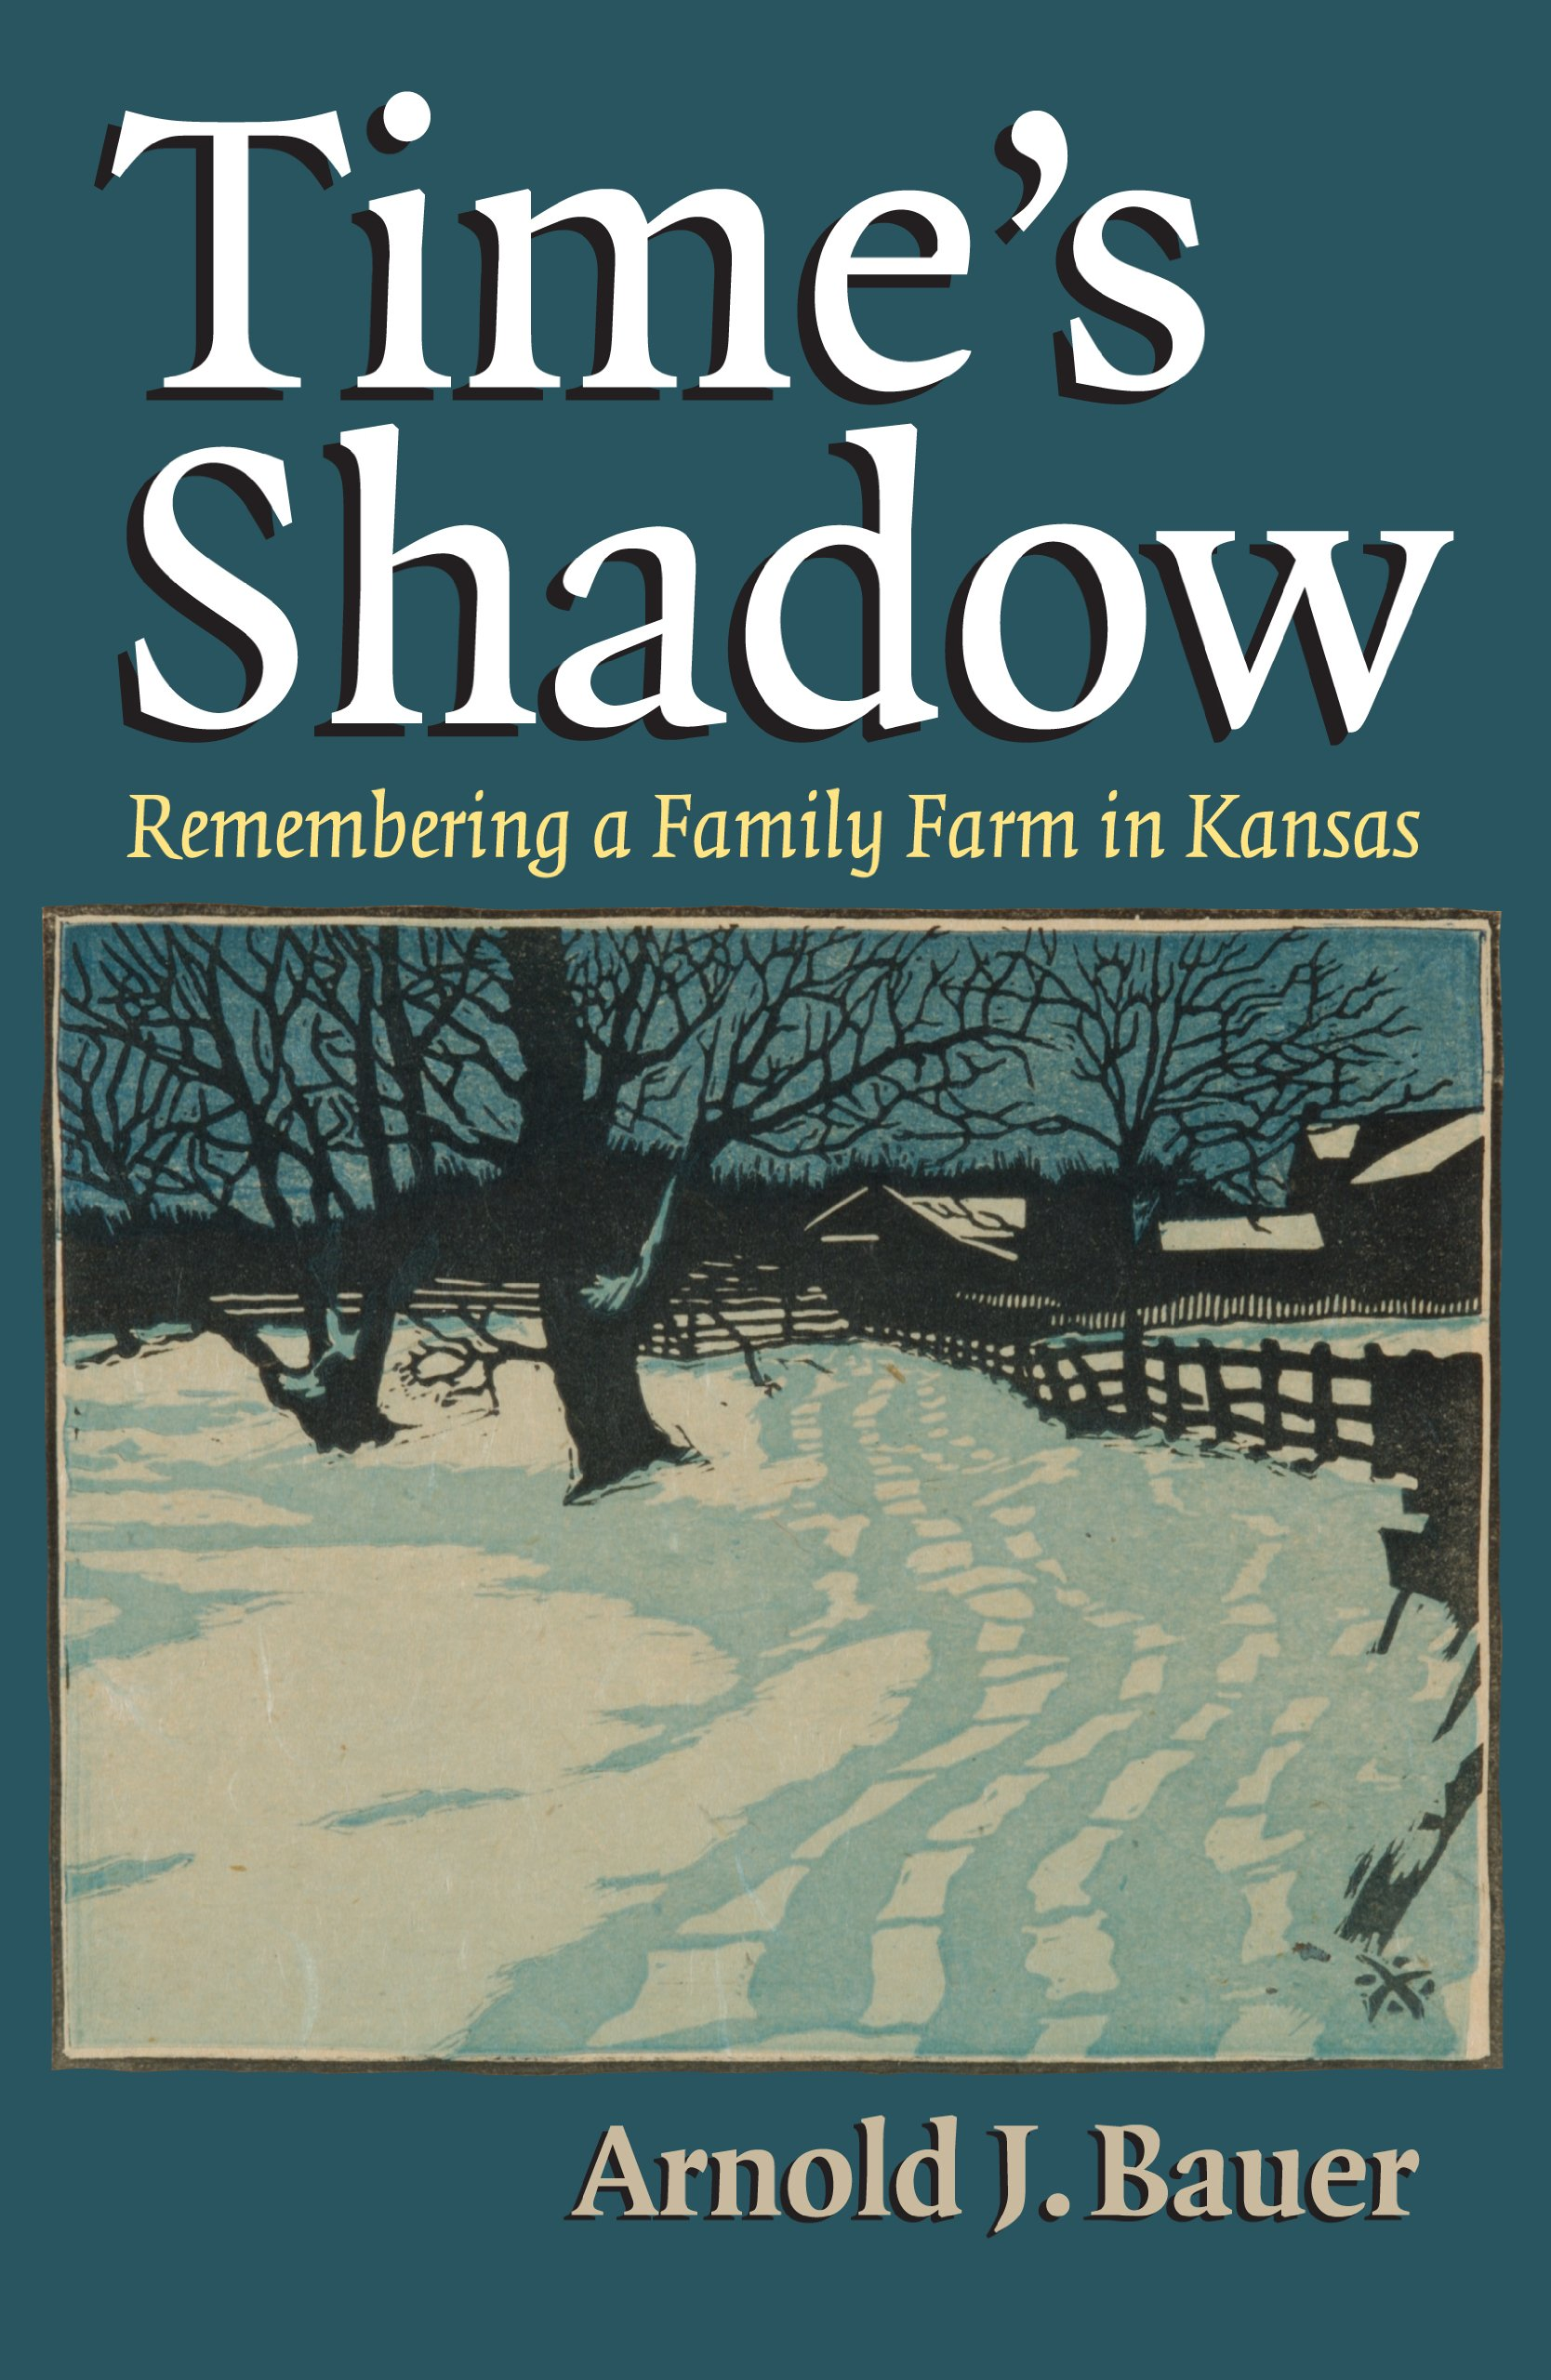 Image result for clip art cover time's shadow by arnold bauer